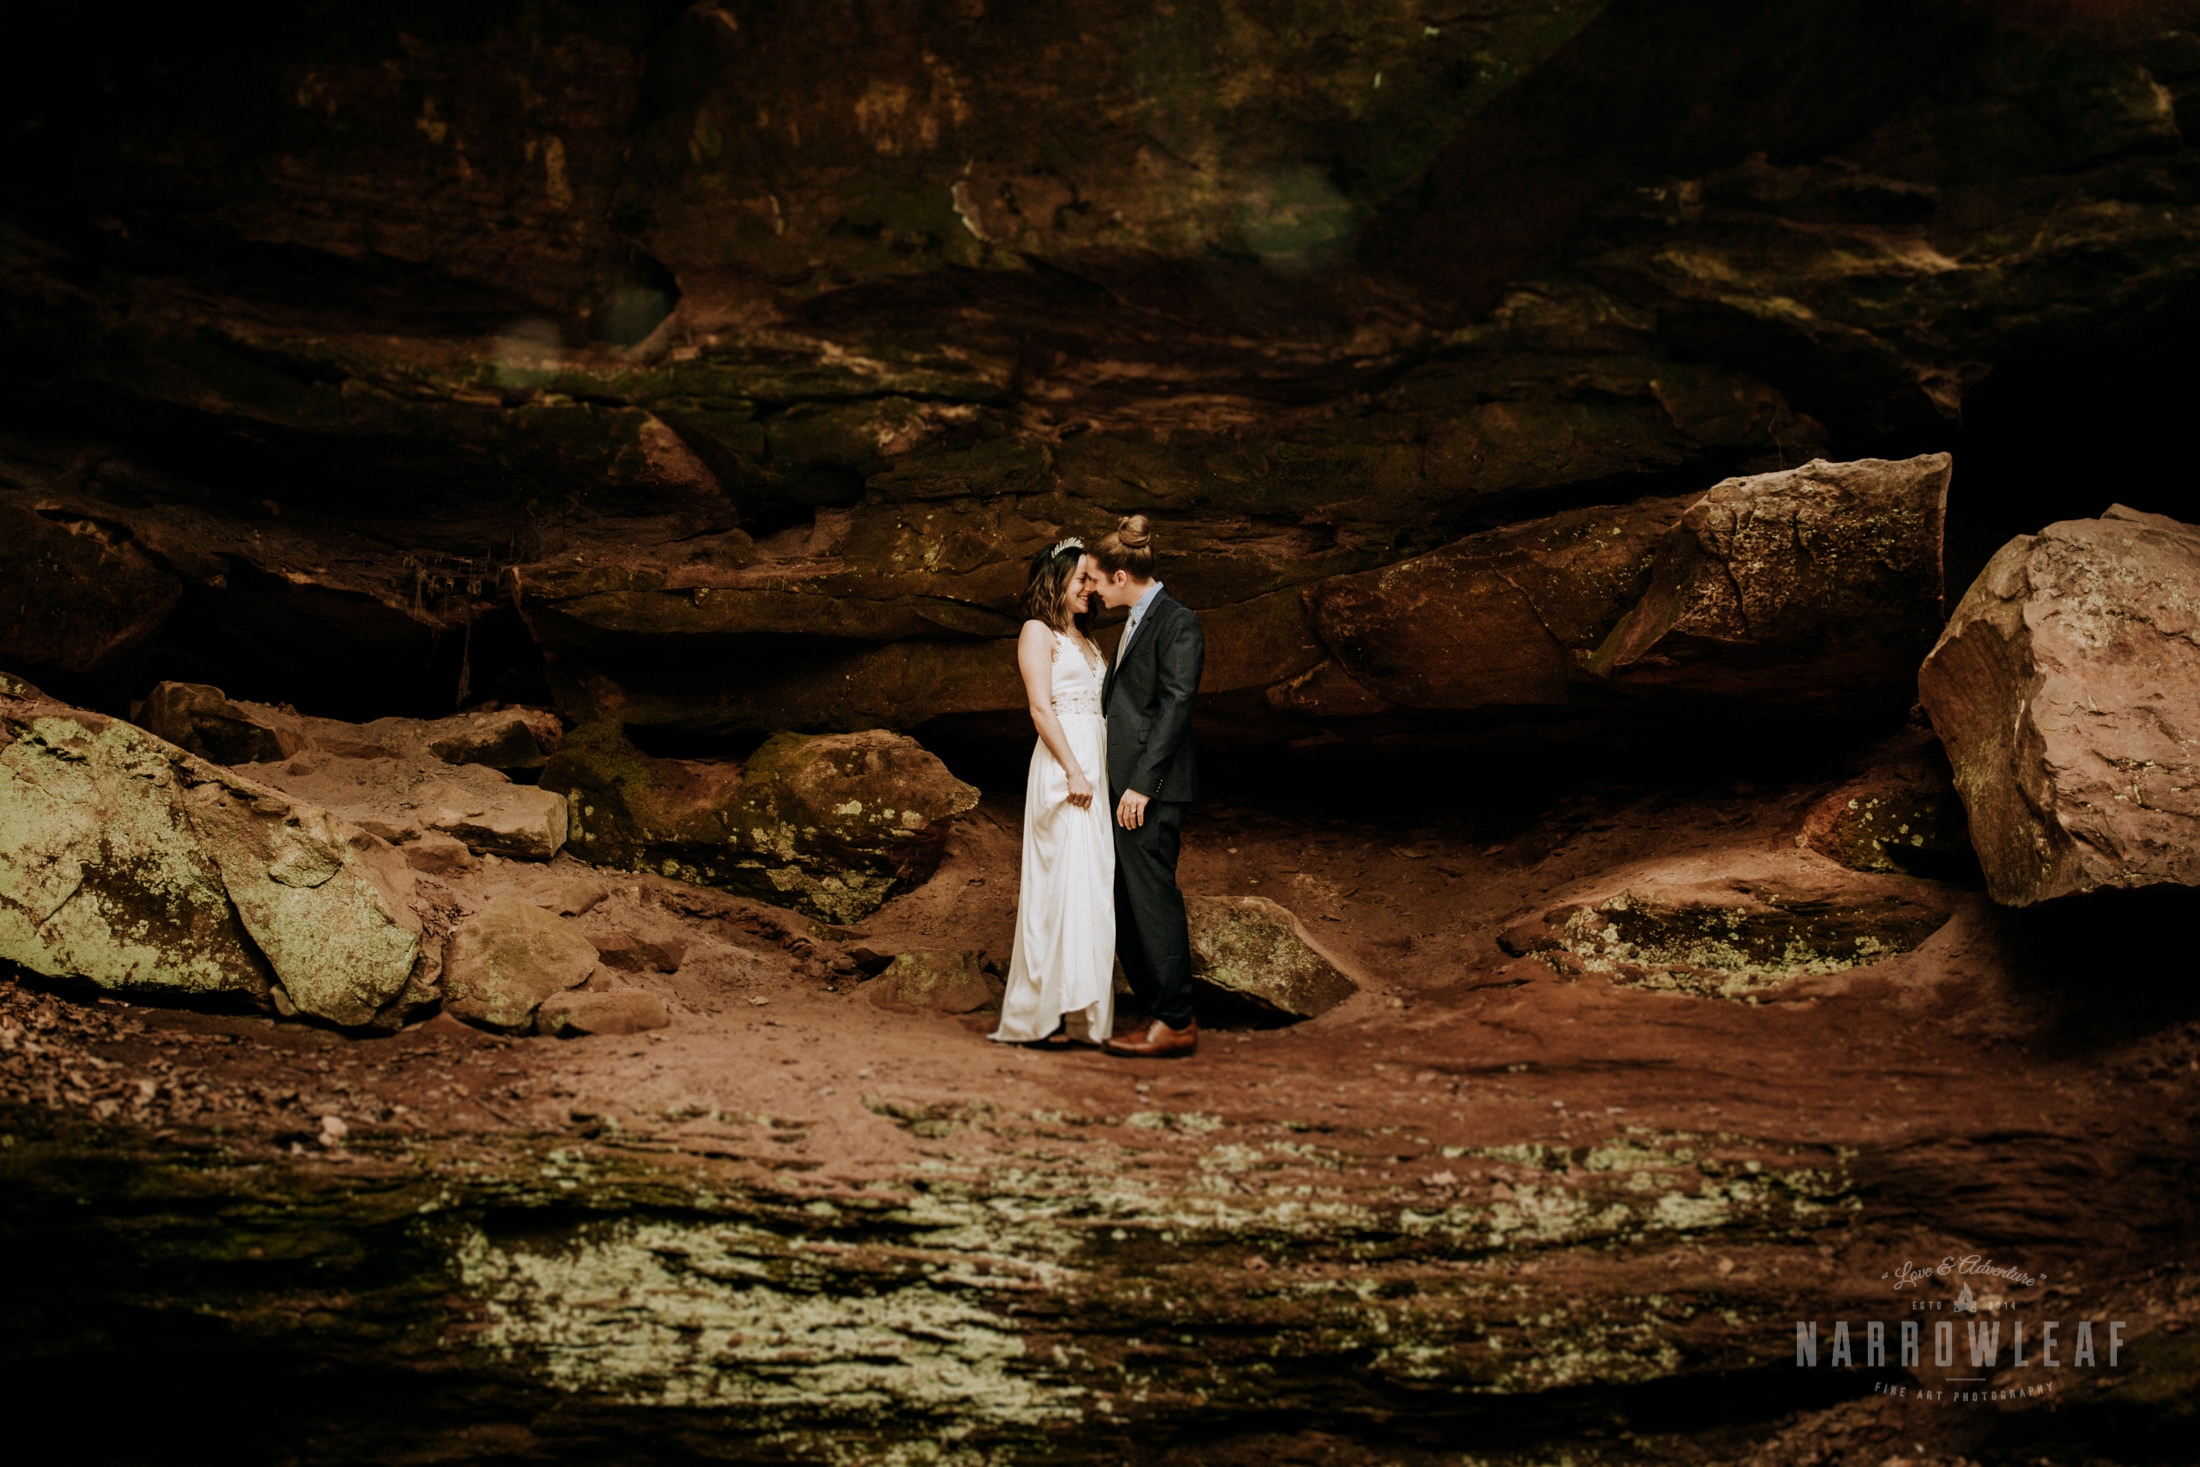 bayfield-Wisconsin-moody-elopement-photographer-Narrowleaf_Love_and_Adventure_Photography-6476.jpg